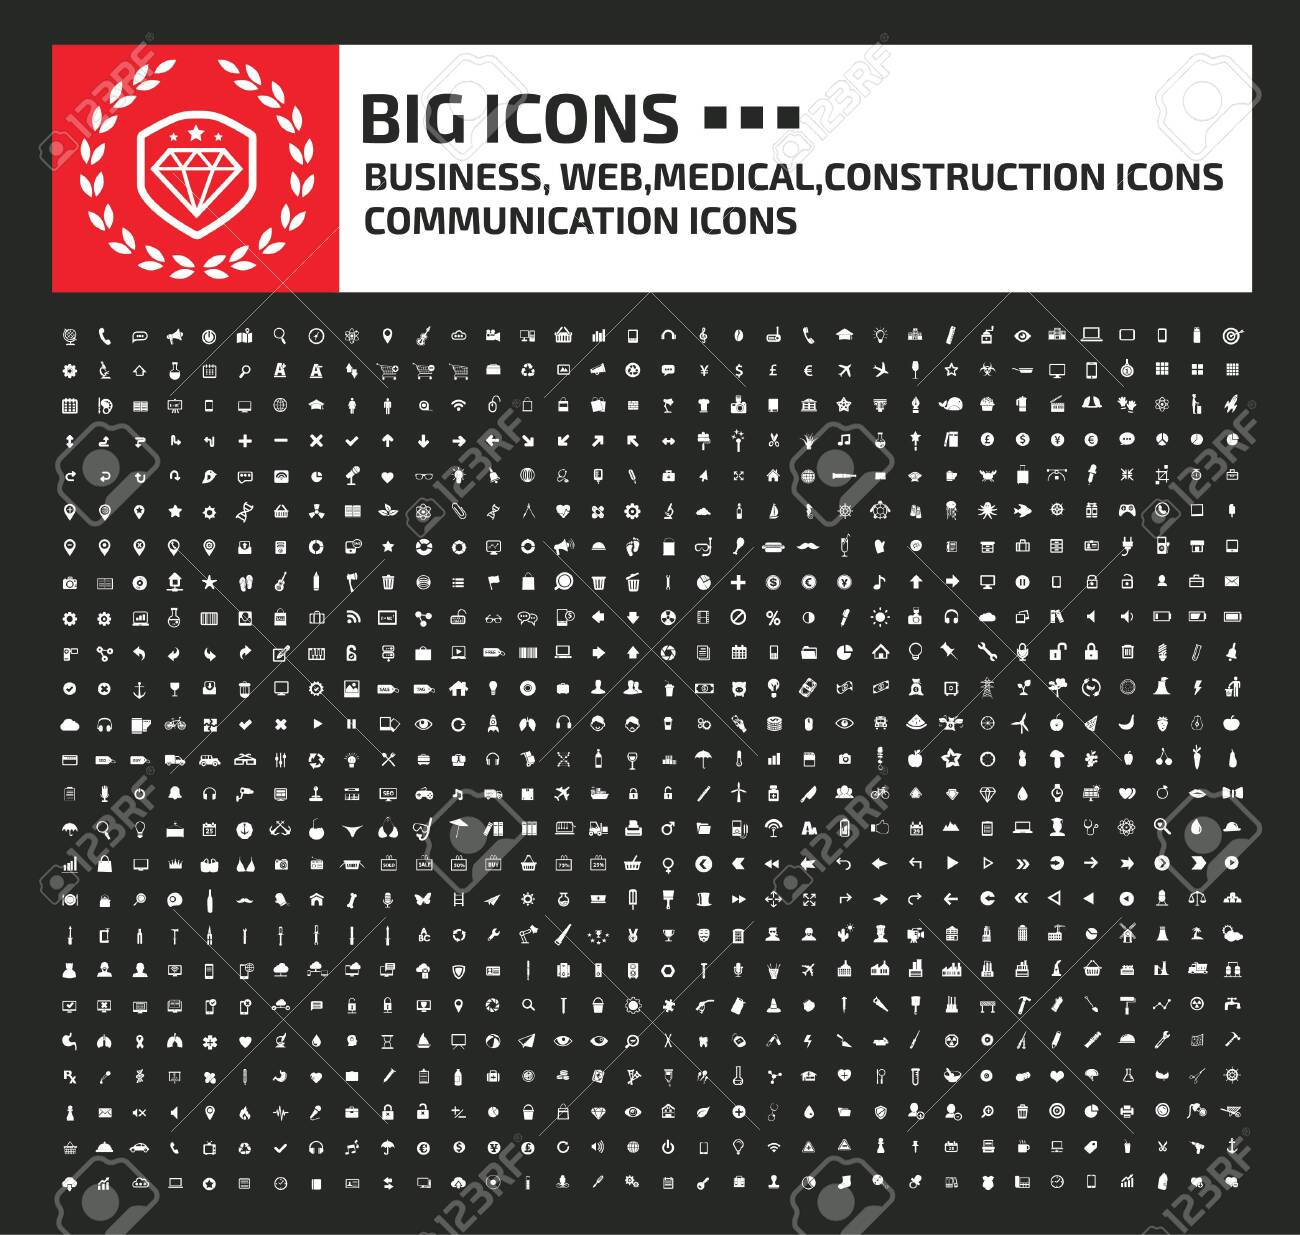 Business web medical and construction icon set design - 137543579